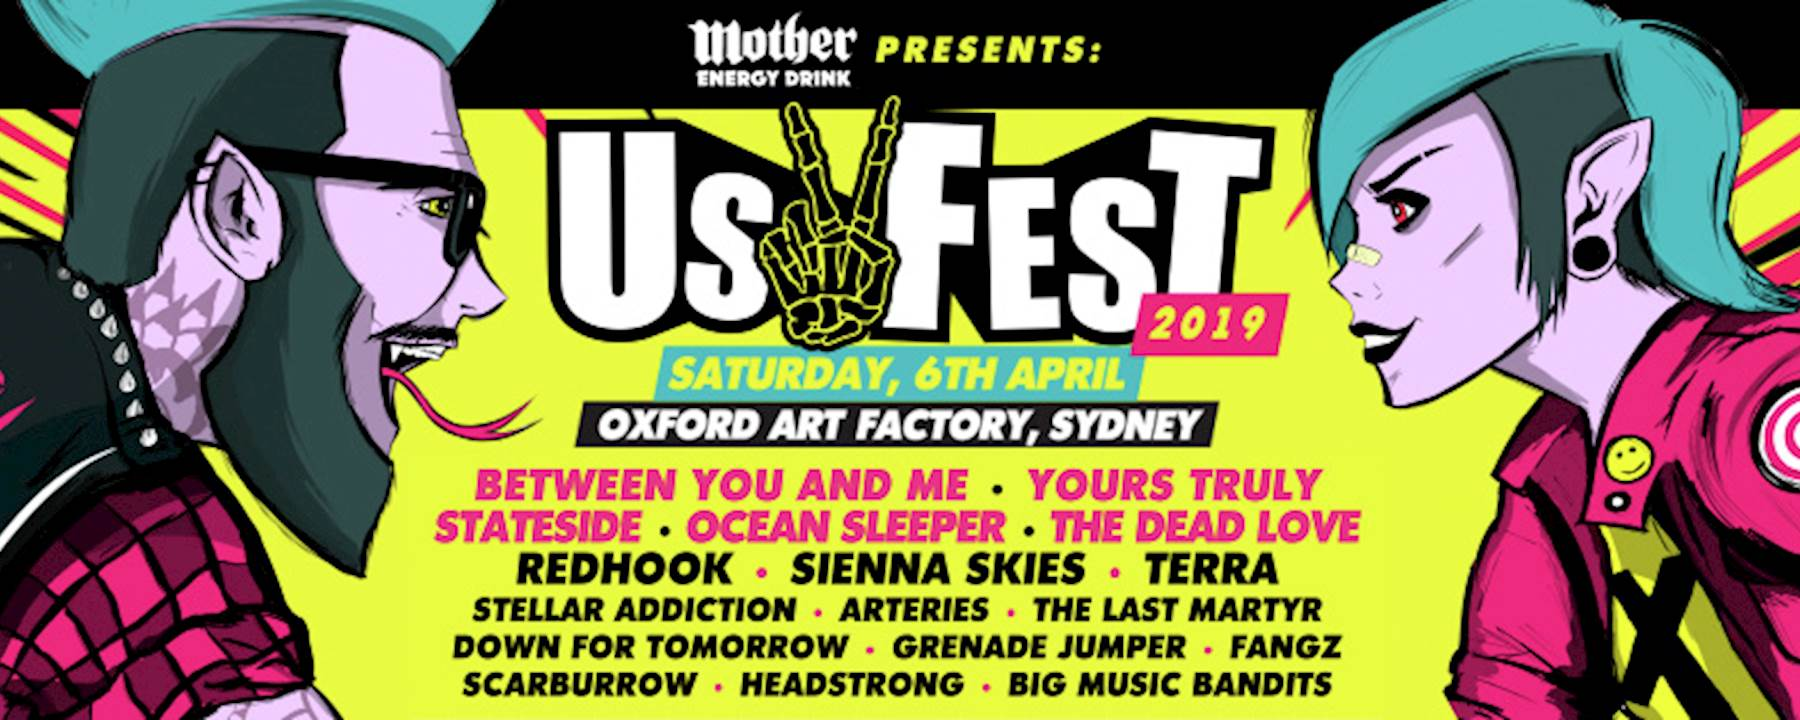 Mother Energy presents USFest